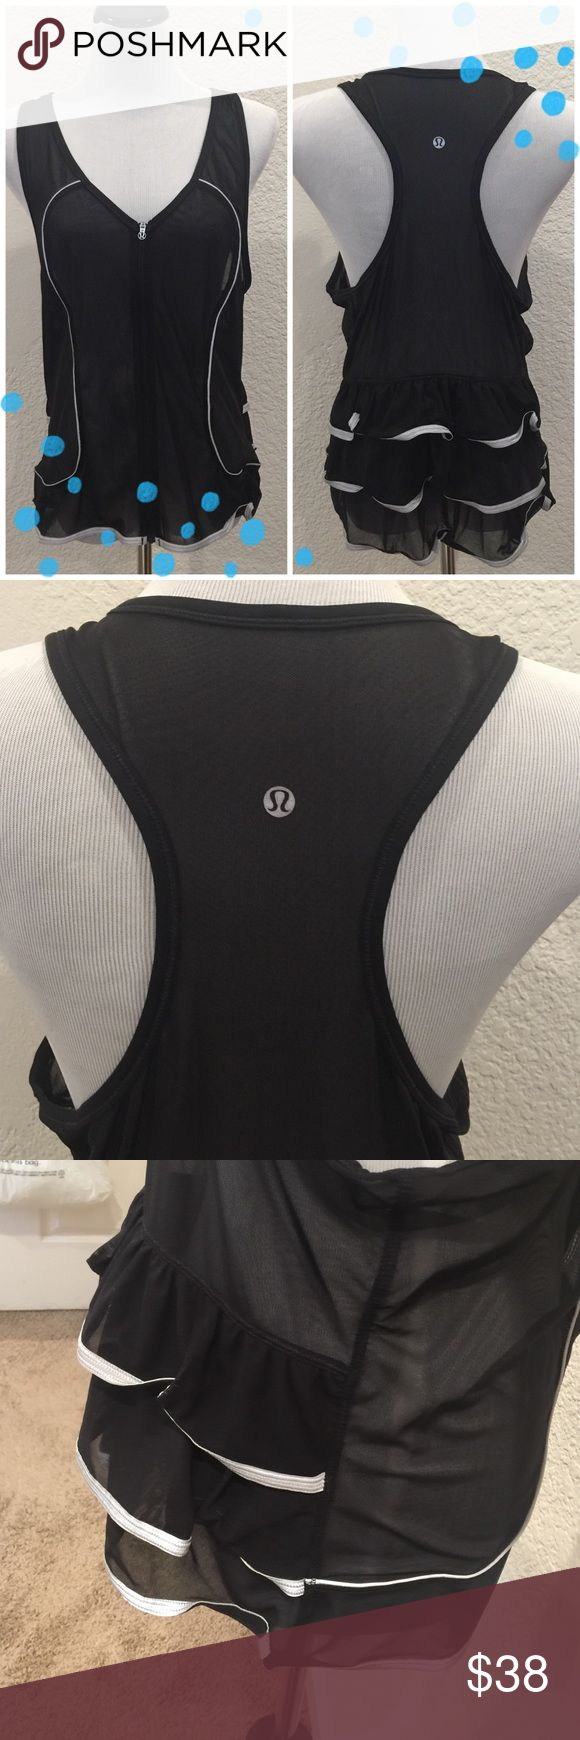 Lululemon black zip up running vest Super cute Lululemon black zip up running vest. And ruffles in the back with reflective matireal; perfect for outdoor running. Great used condition. Does not have the size tag or dot, but fits like a medium-large depending on how many layers you wear under it! lululemon athletica Jackets & Coats Vests